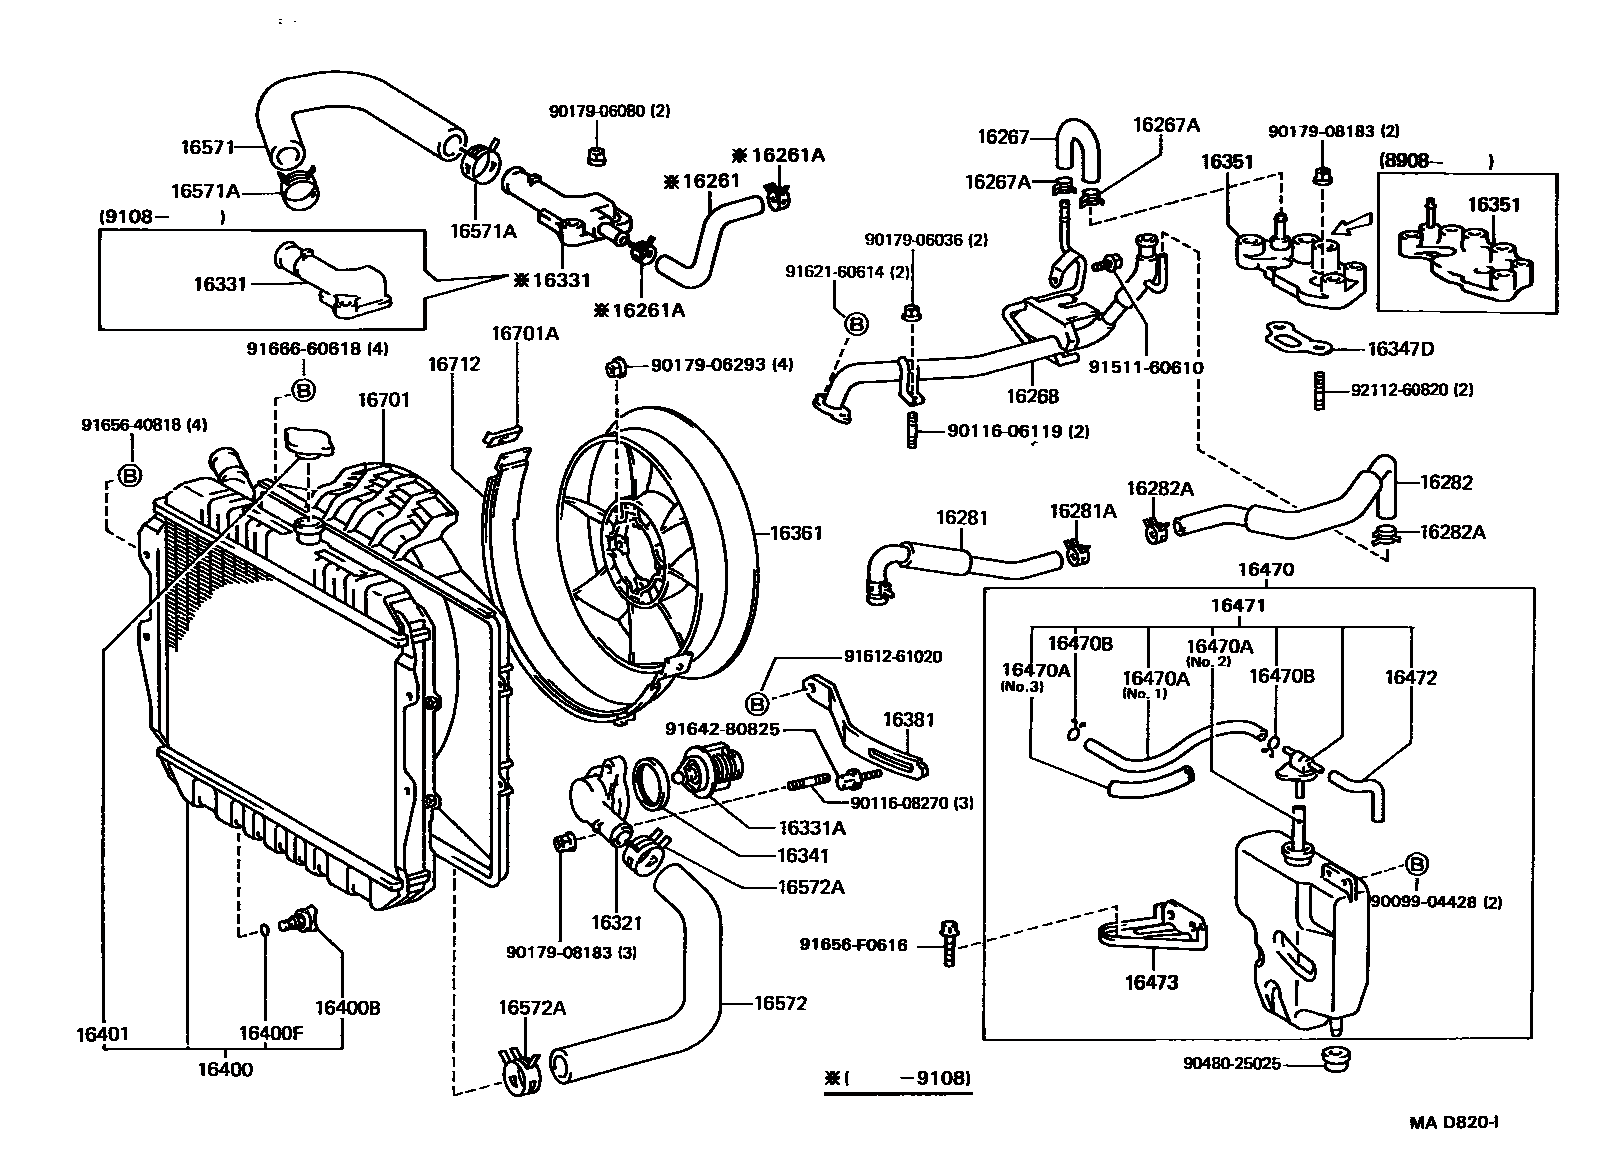 hight resolution of toyota 3vze engine diagram wiring diagram yer 1990 toyota 4runner engine diagram 3vze